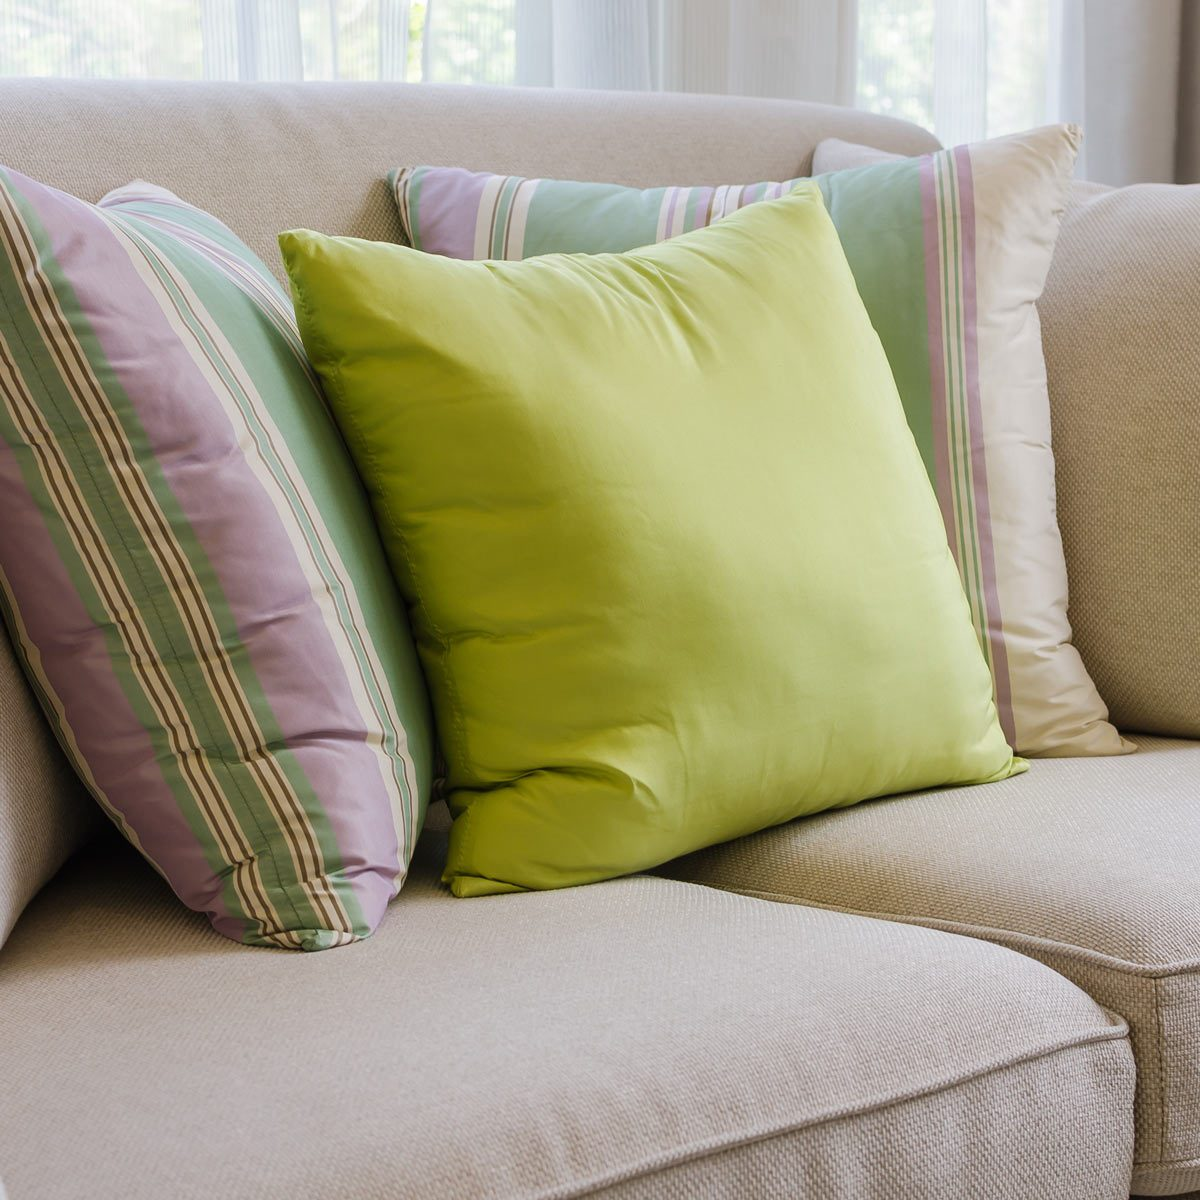 Pillow-on-sofa-at-home